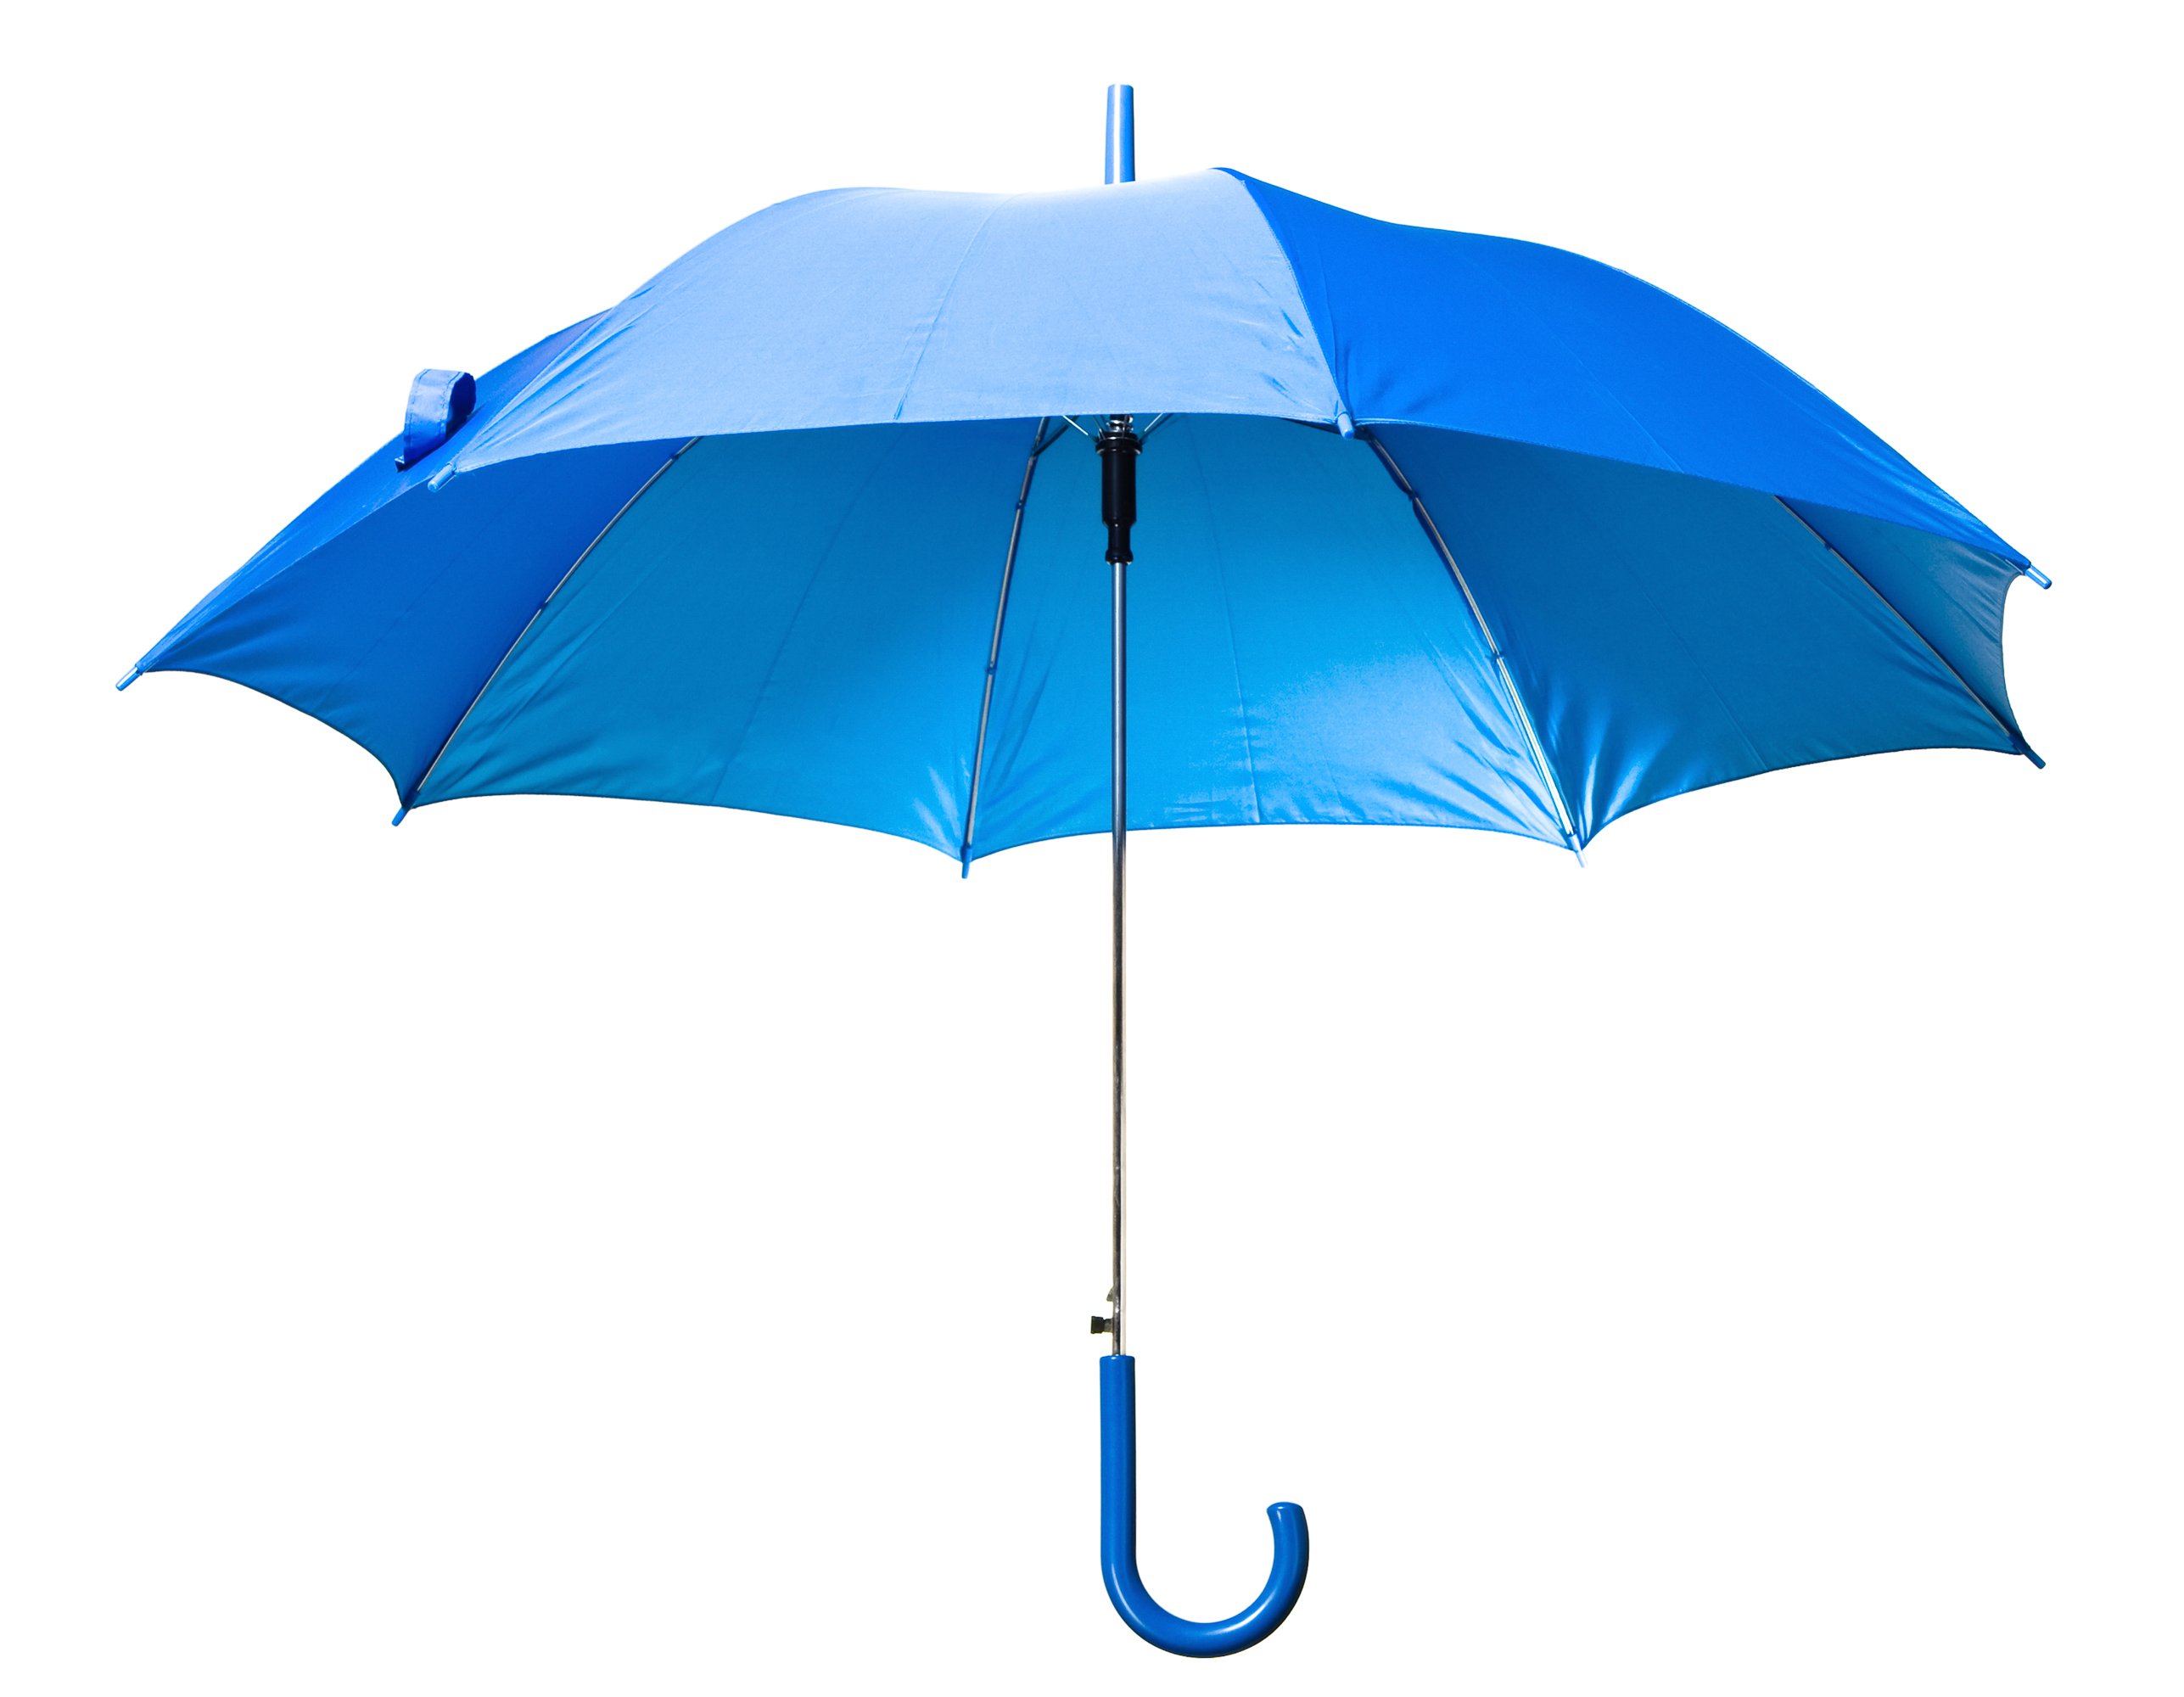 Blue Open Umbrella, Accessory, Security, Protect, Protection, HQ Photo